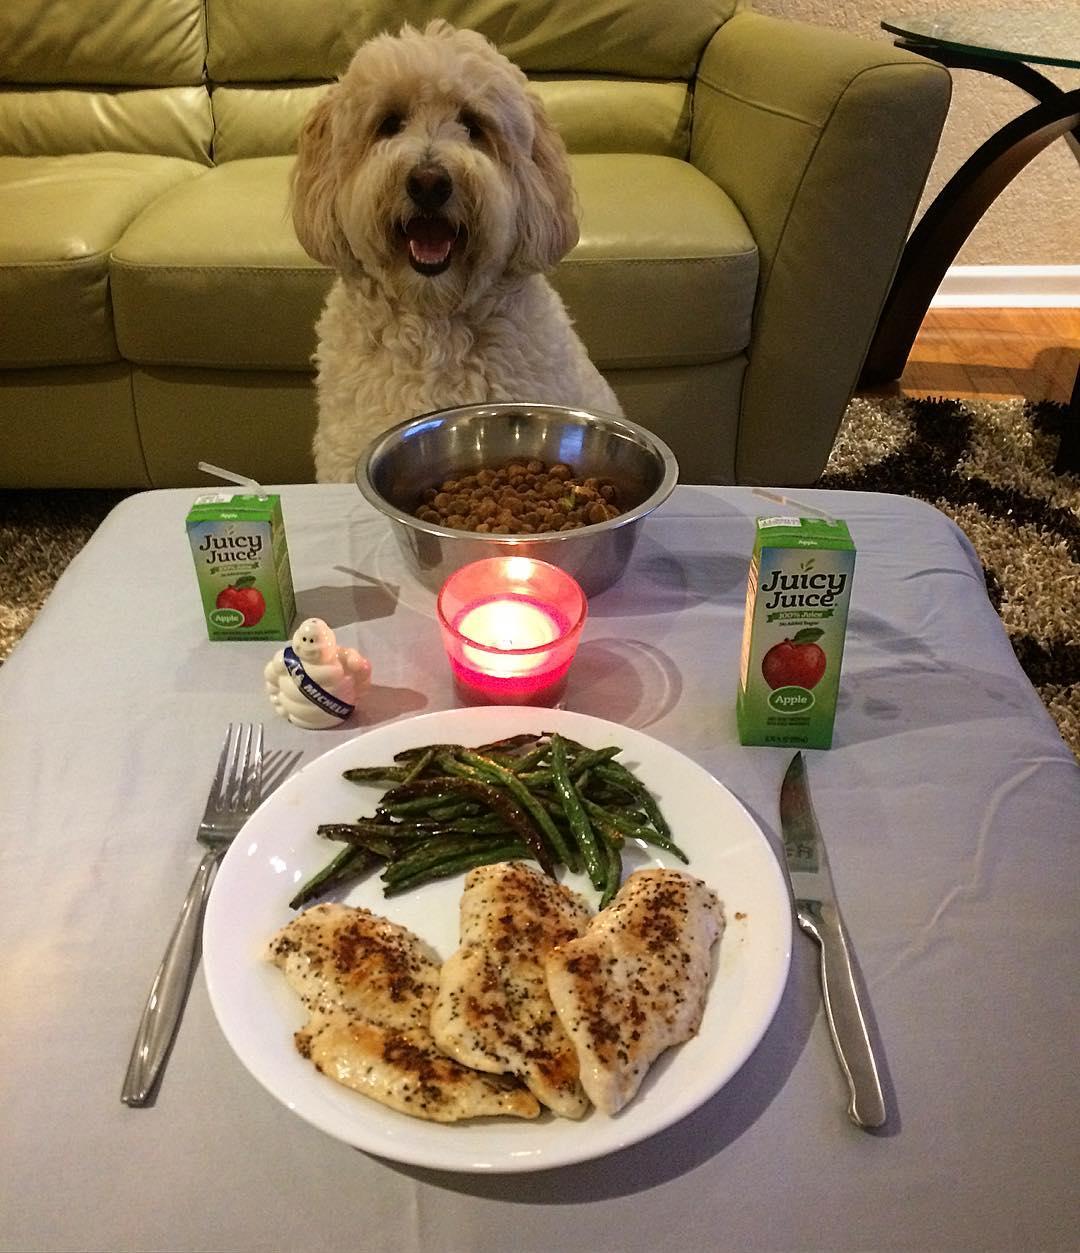 Wags to Wiskers Valentine's Day Ideas with your Dog